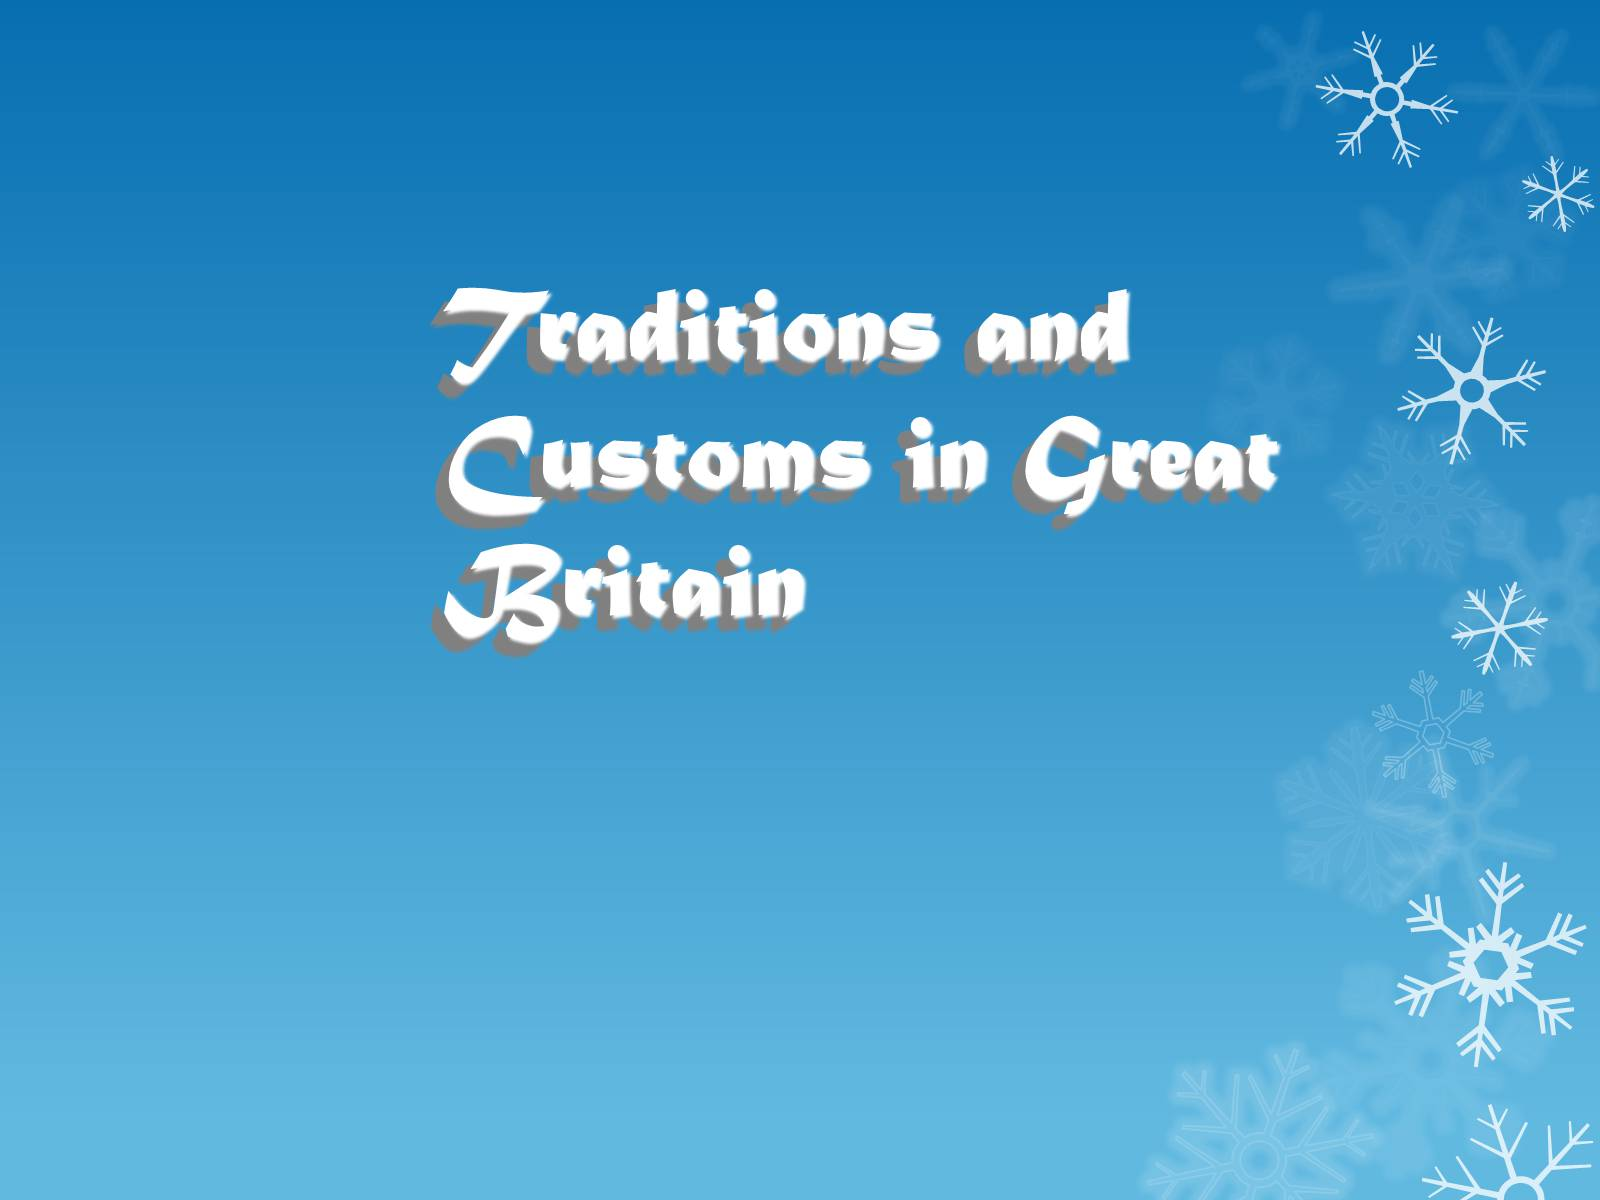 Презентація на тему «Traditions and Customs in Great Britain»